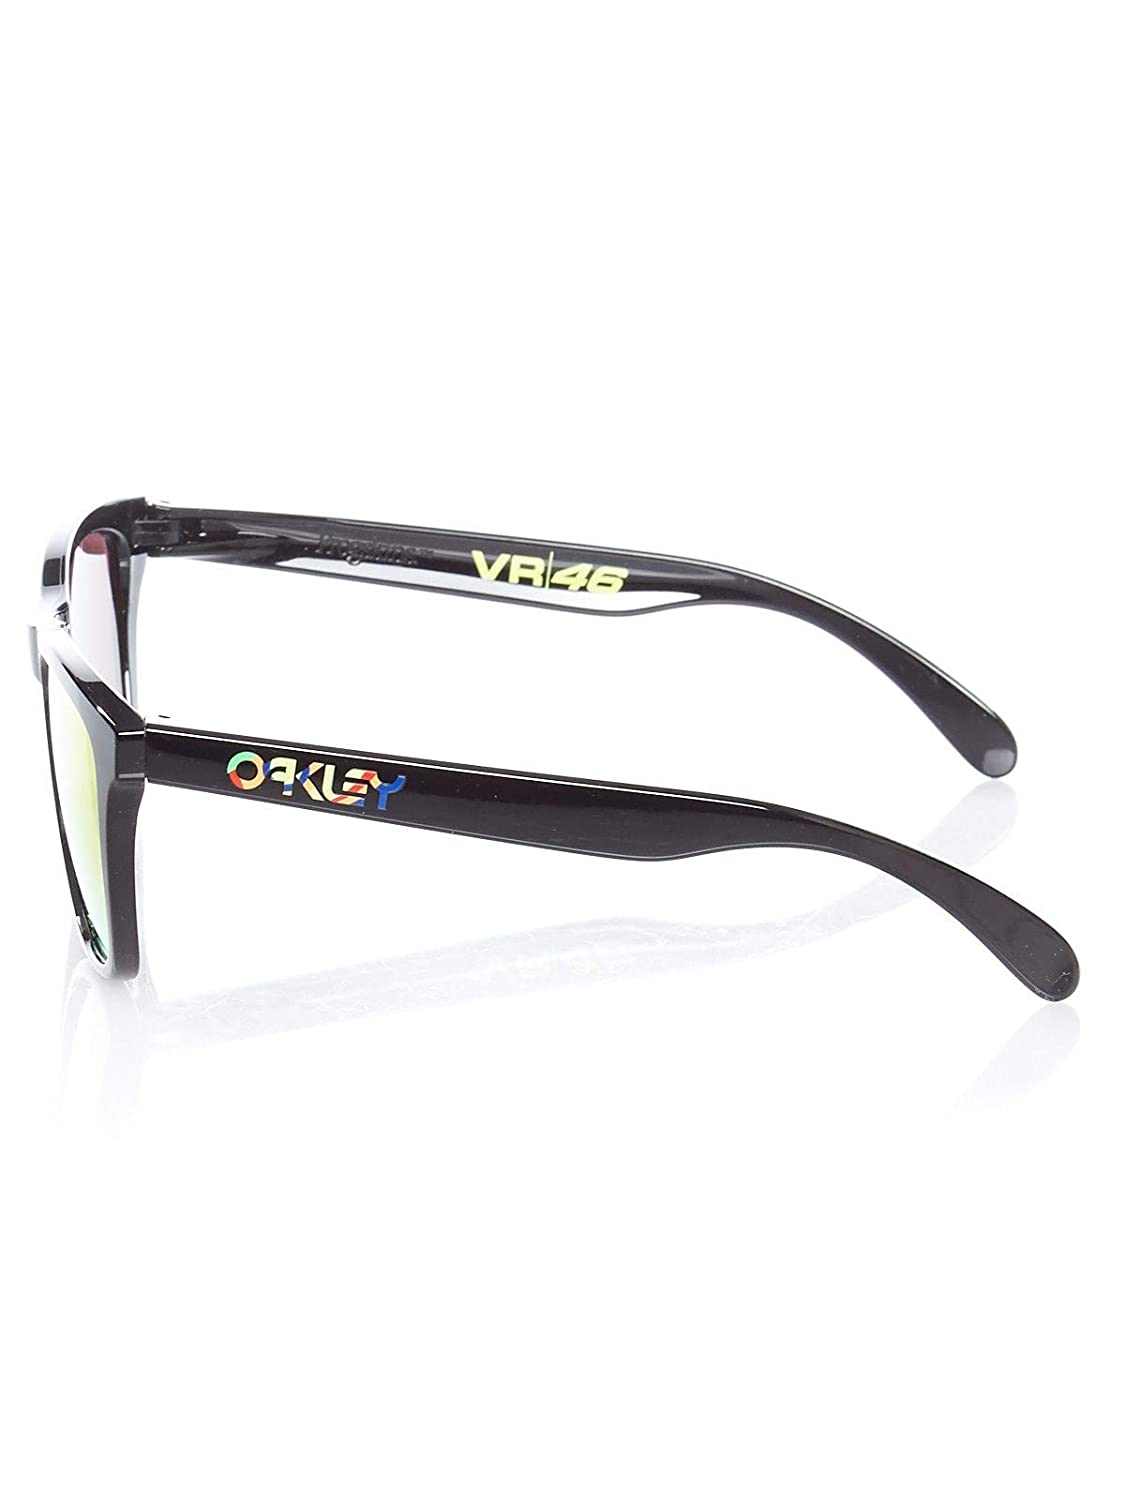 89b792c118 Oakley Polished Black-Prizm Ruby Frogskins - Vr46 Valentino Rossi  Collection Sun (One Size